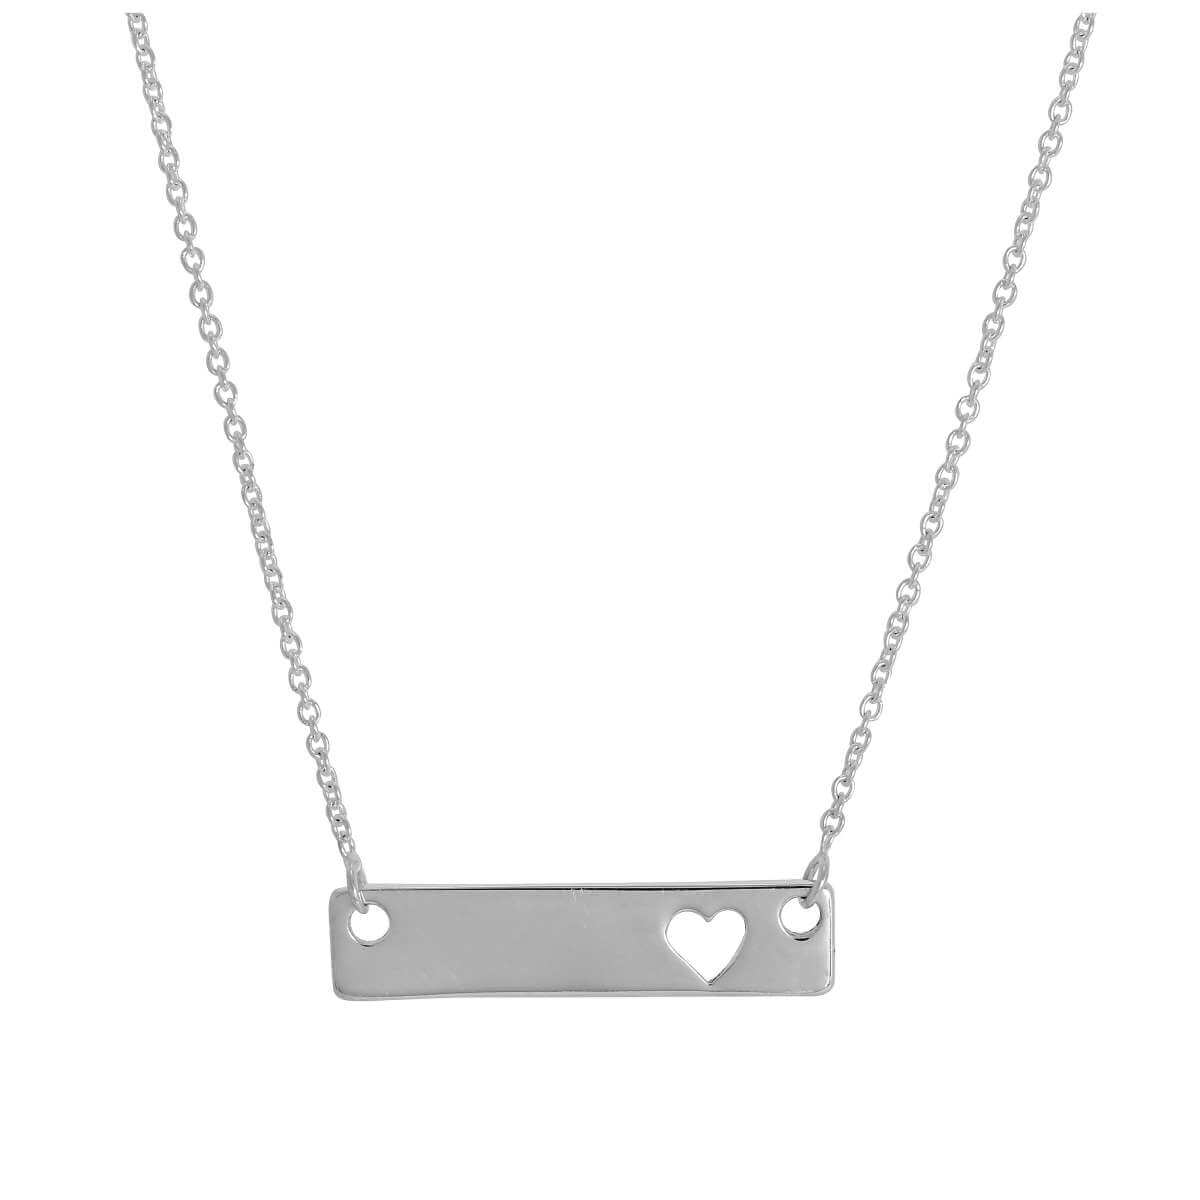 Sterling Silver 17 Inch Necklace with Engravable Bar & Heart